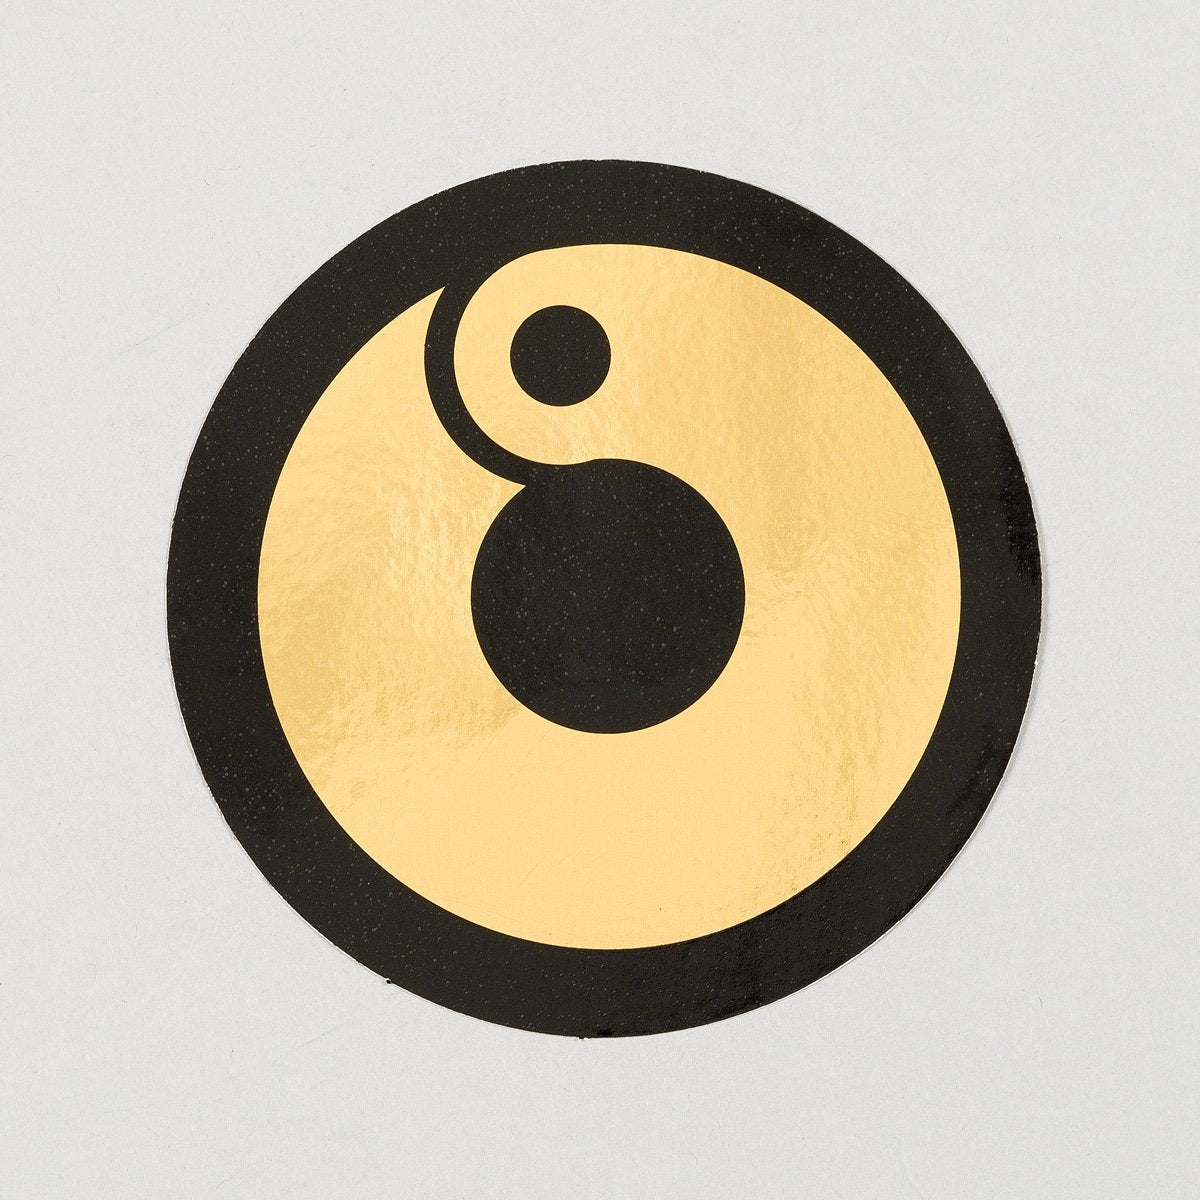 Rollersnakes Hooper Sticker Gold/Black 110mm - Skateboard